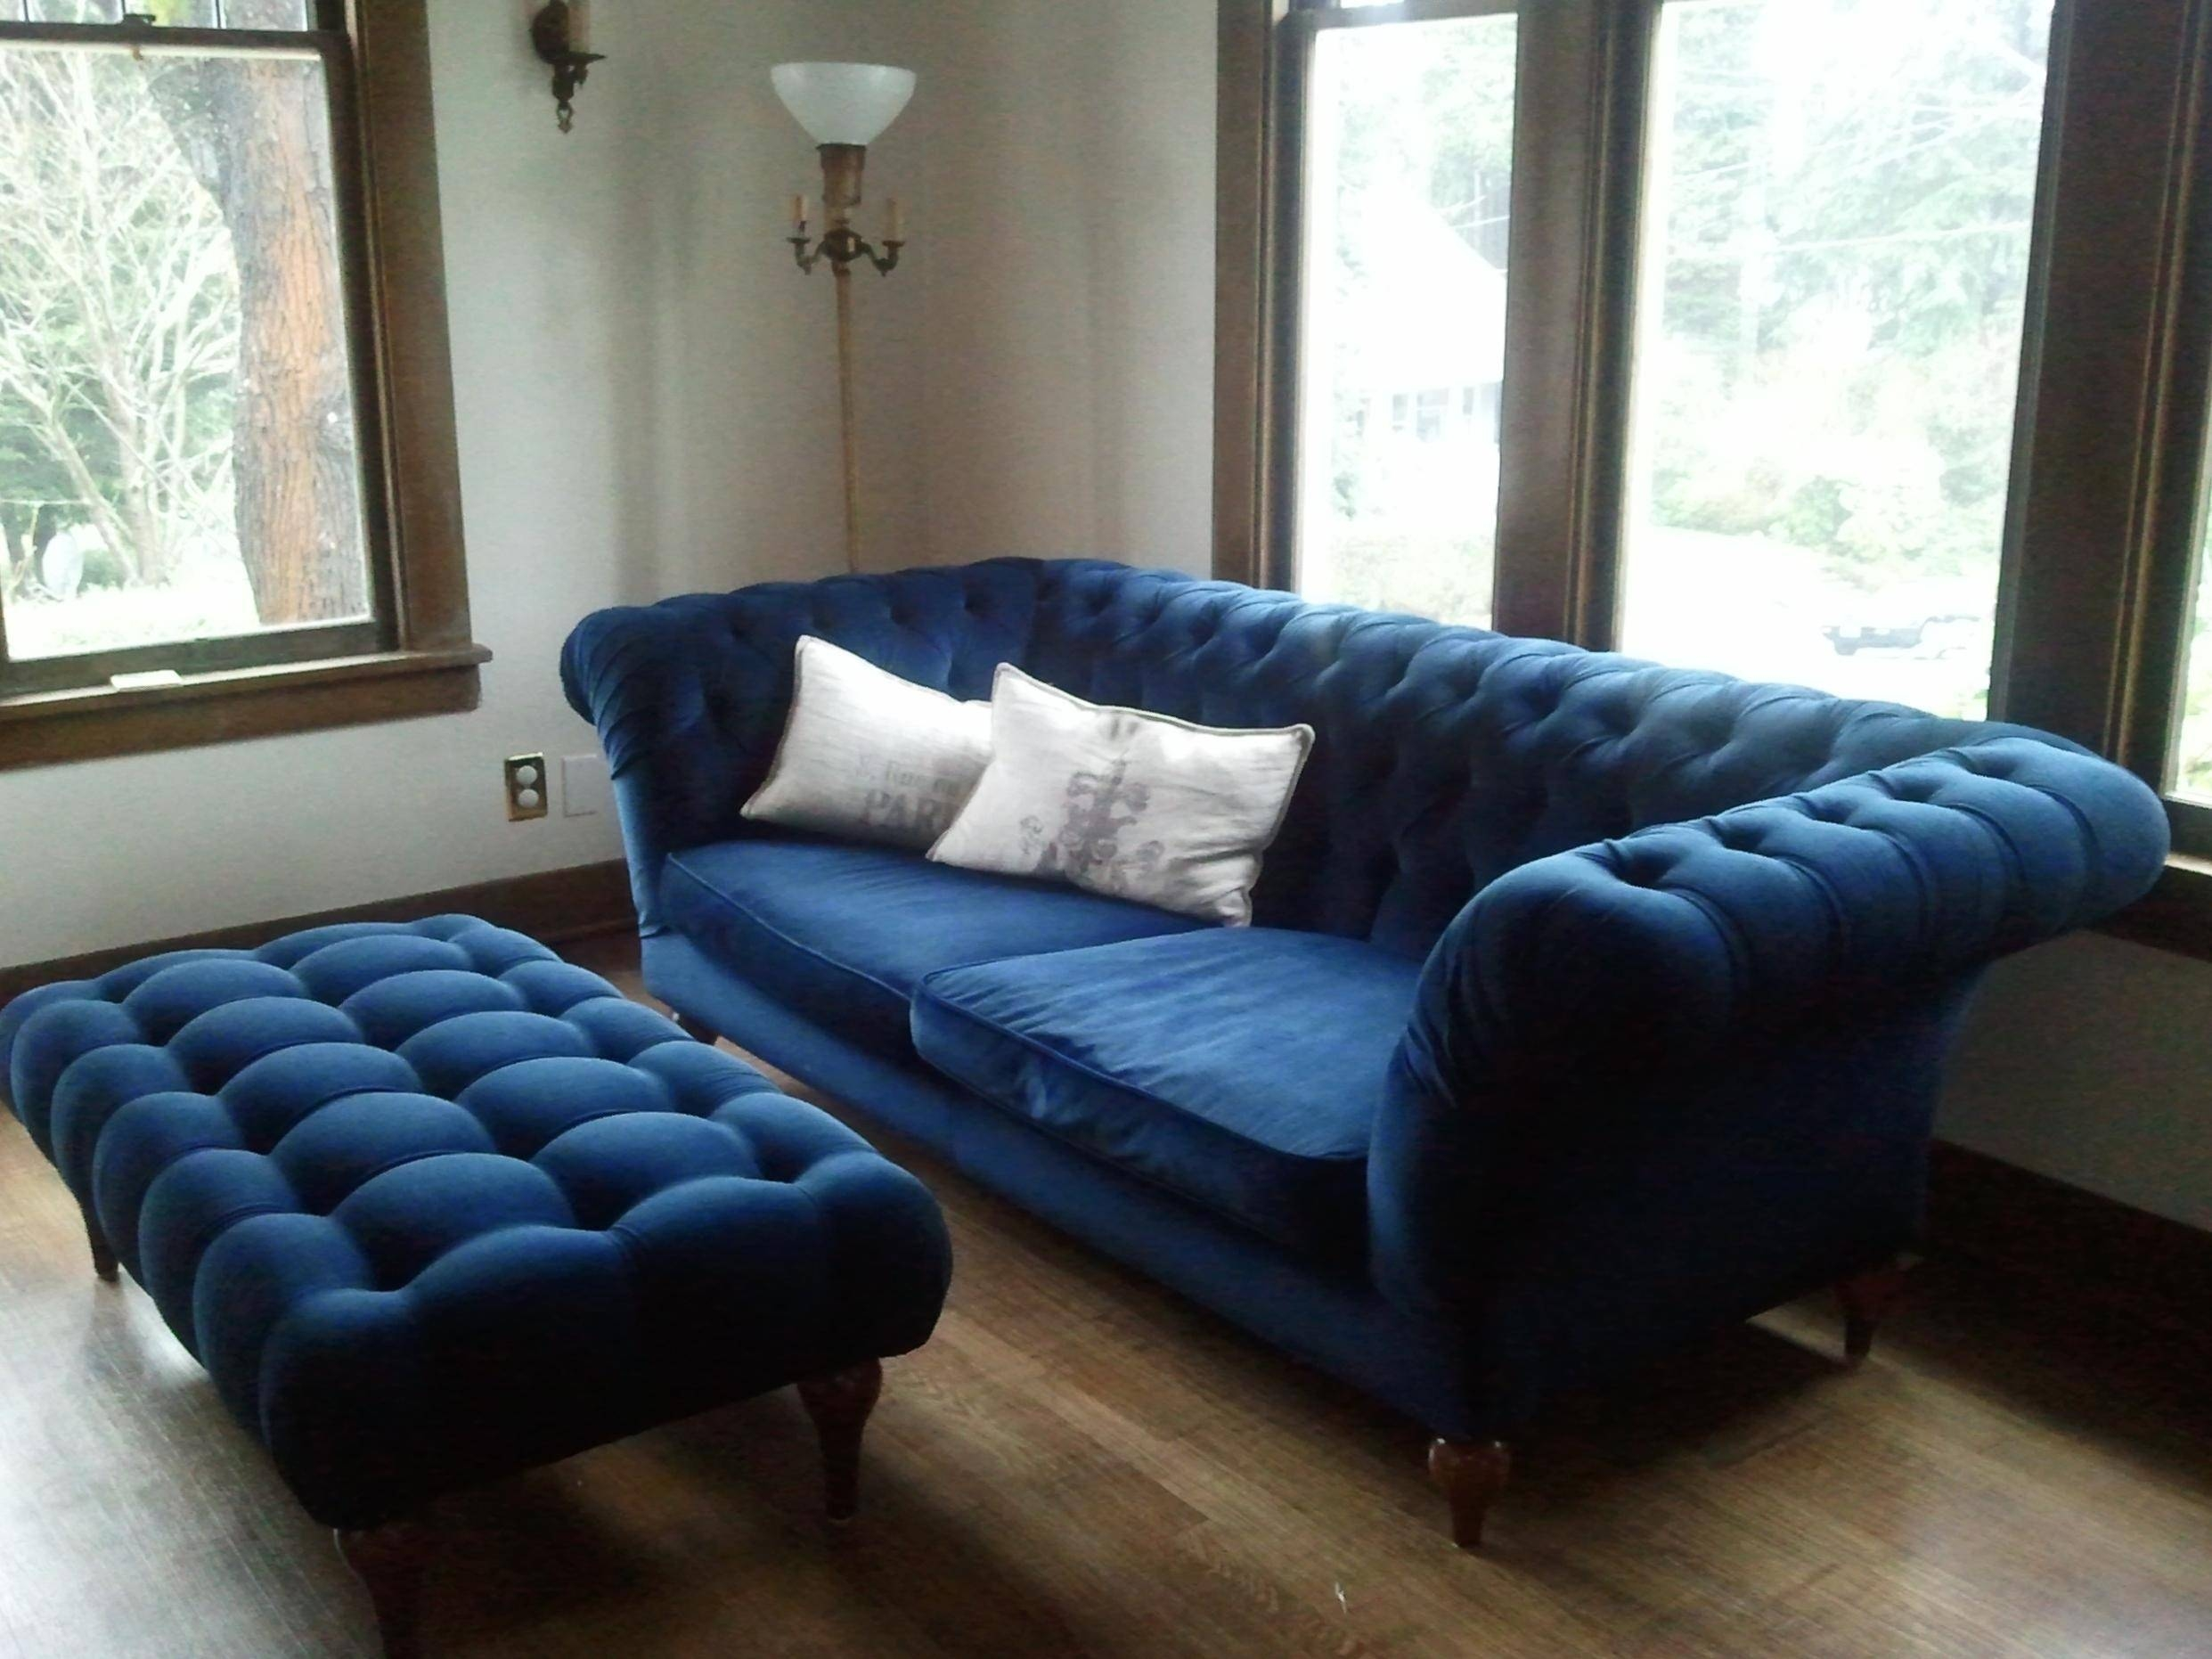 20 Best Ideas Craigslist Sectional Sofas | Sofa Ideas inside Craigslist Sectional Sofas (Image 3 of 15)